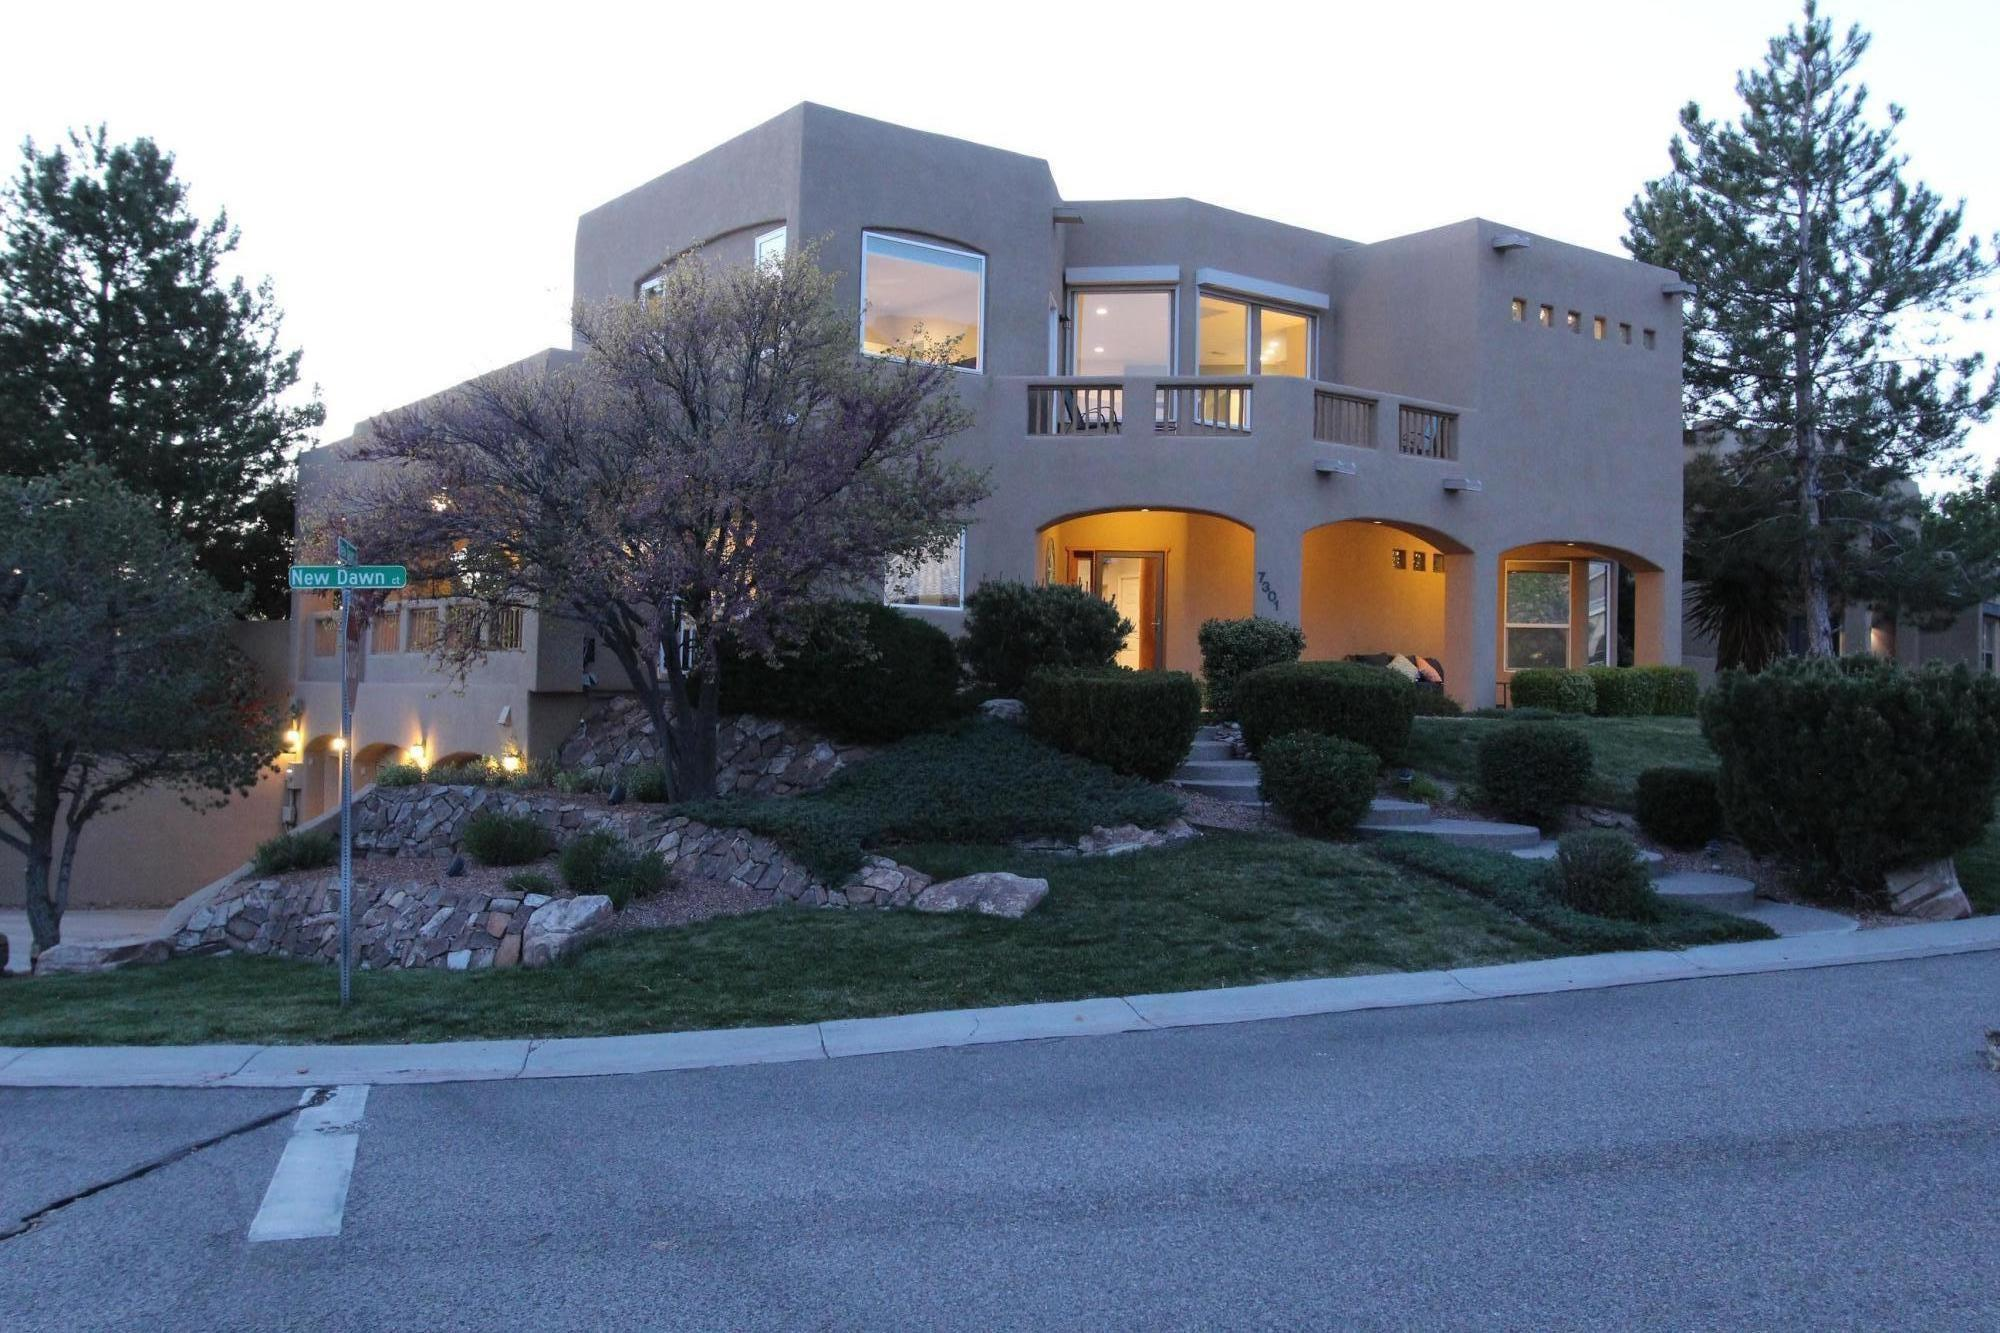 7301 NEW DAWN Court NE Property Photo - Albuquerque, NM real estate listing